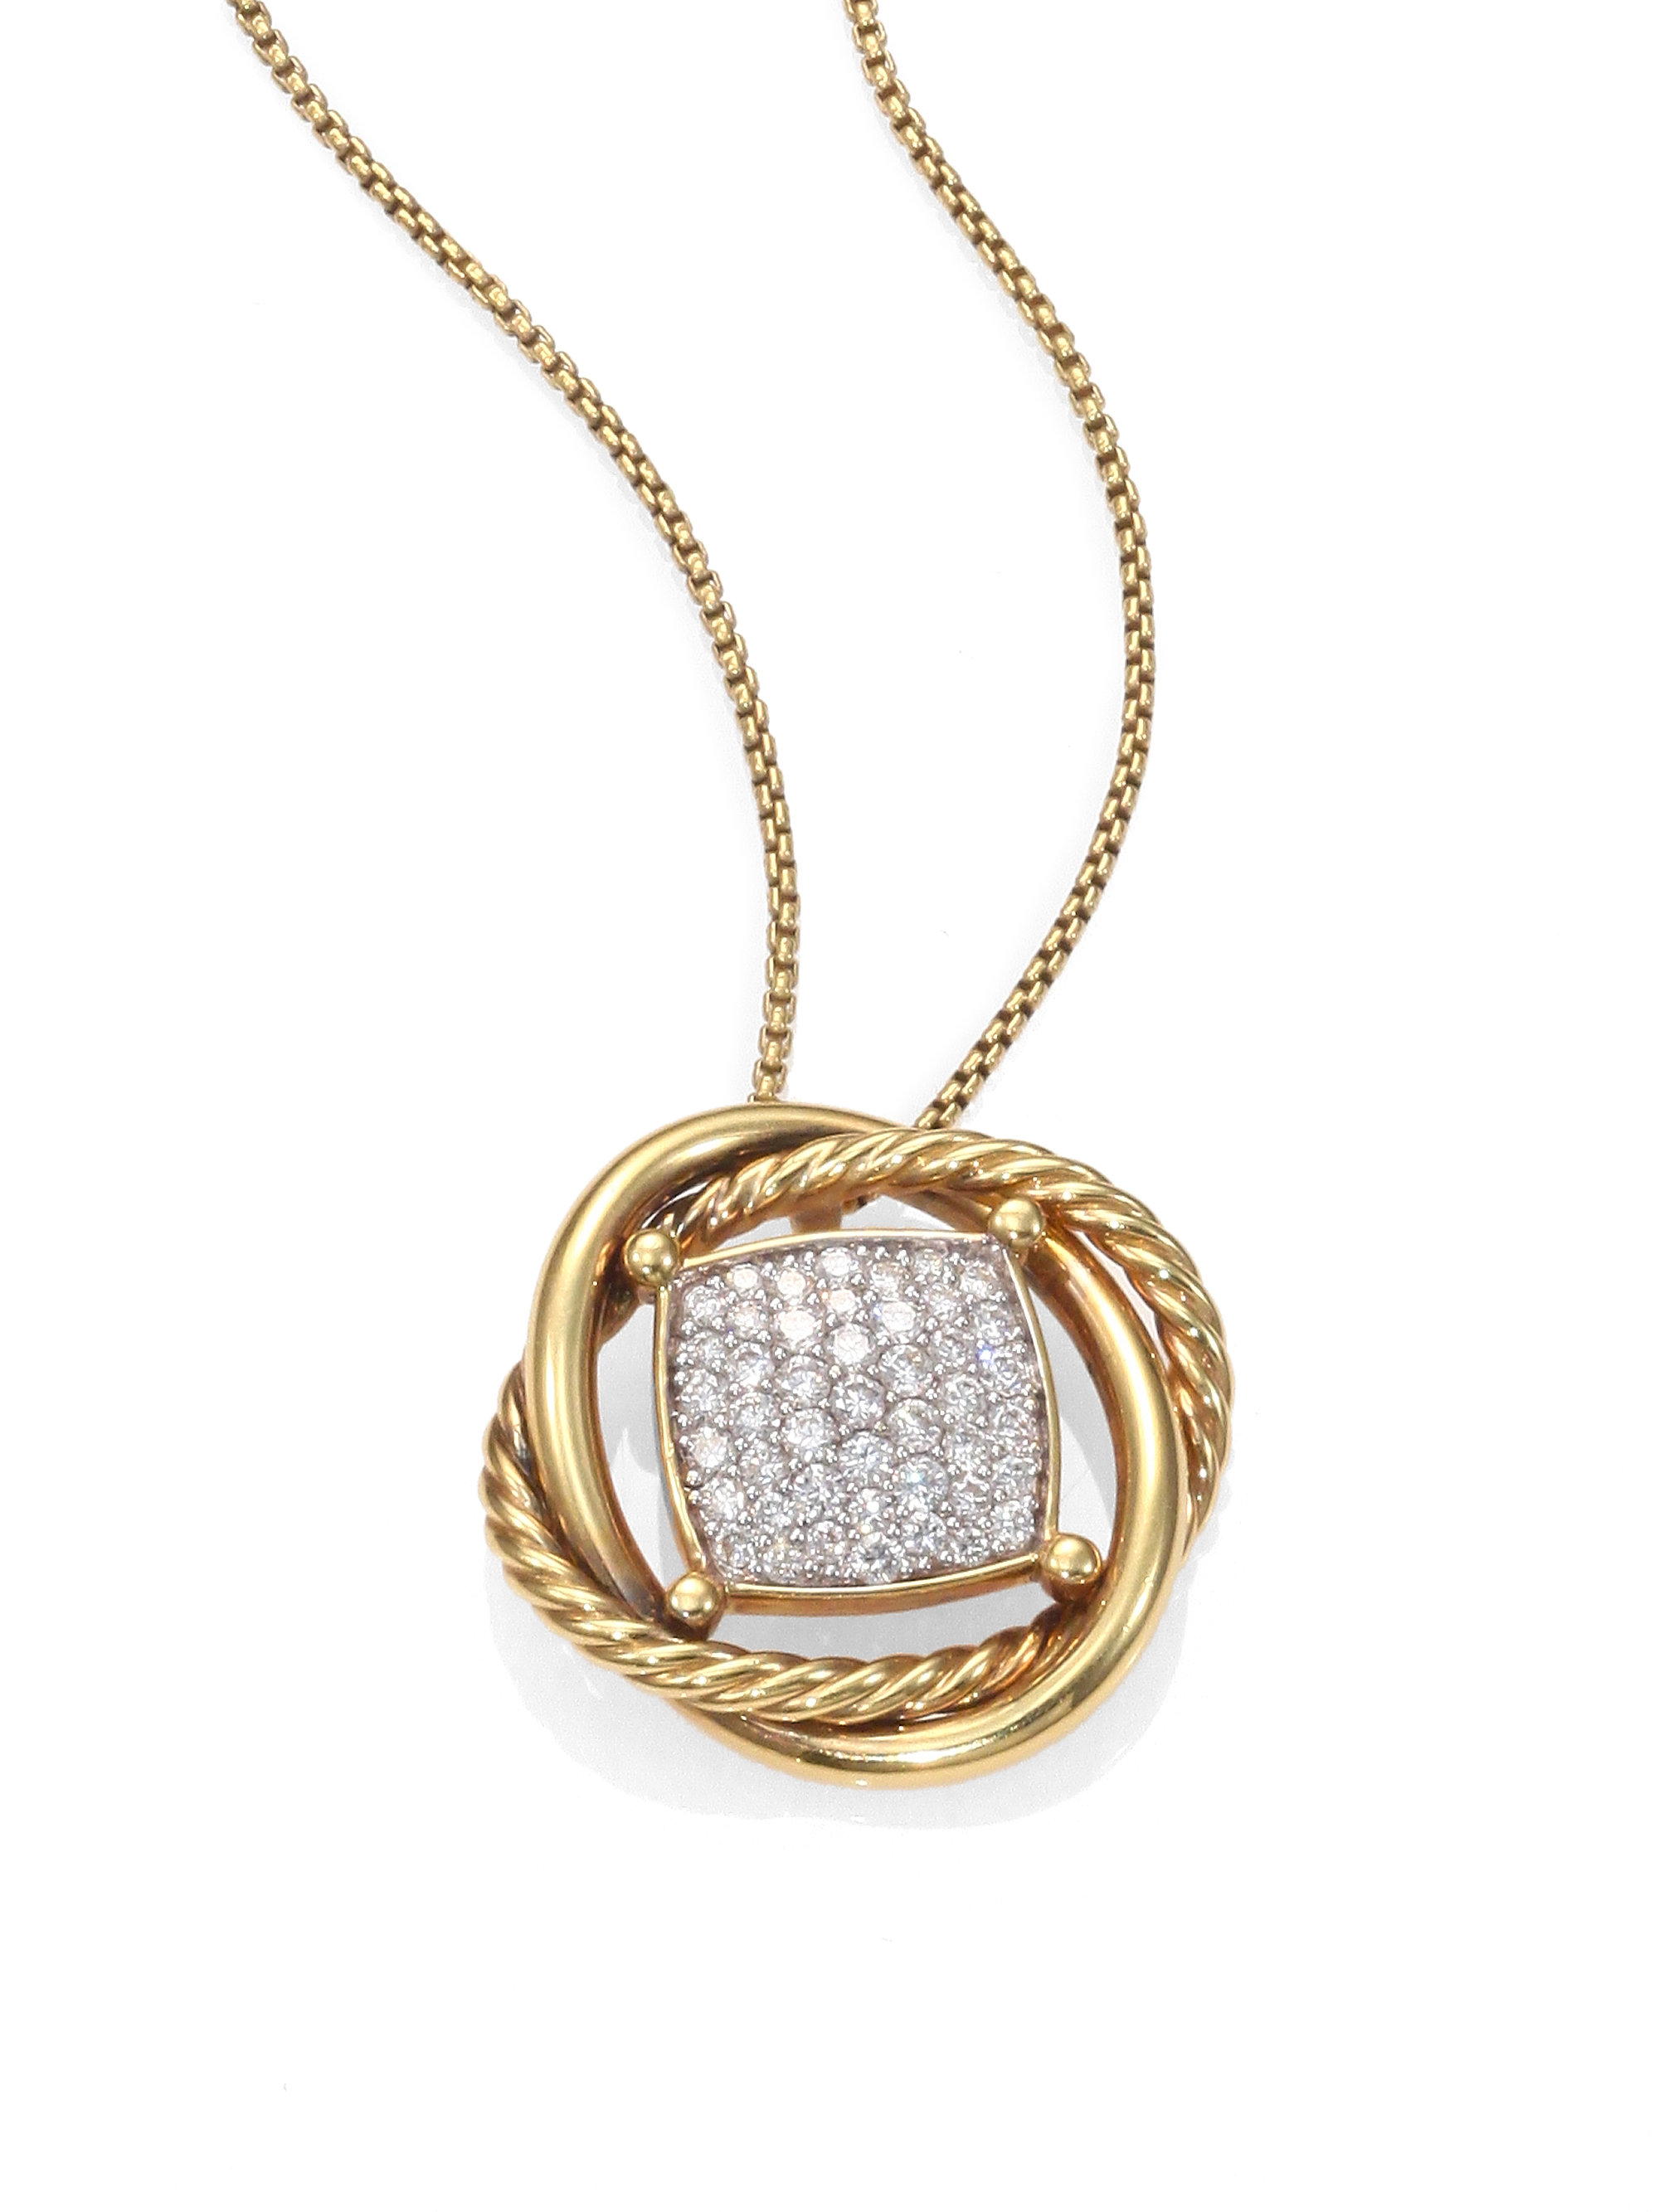 david yurman and 18k gold pendant necklace in gold